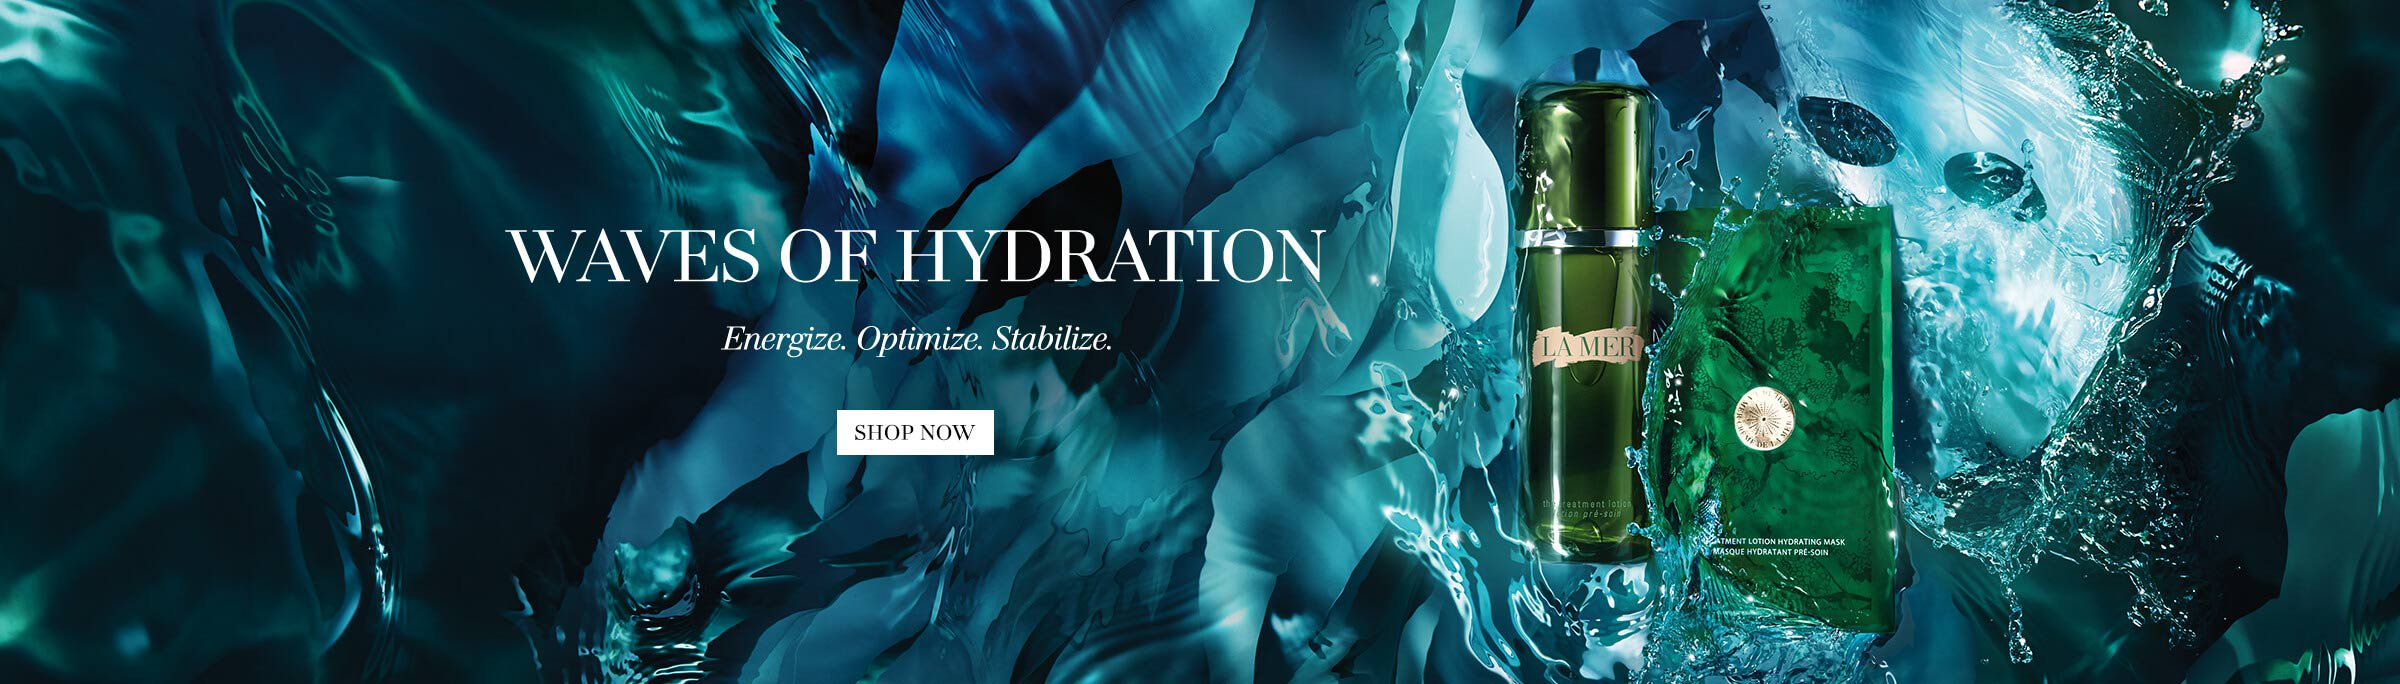 Waves of Hydration